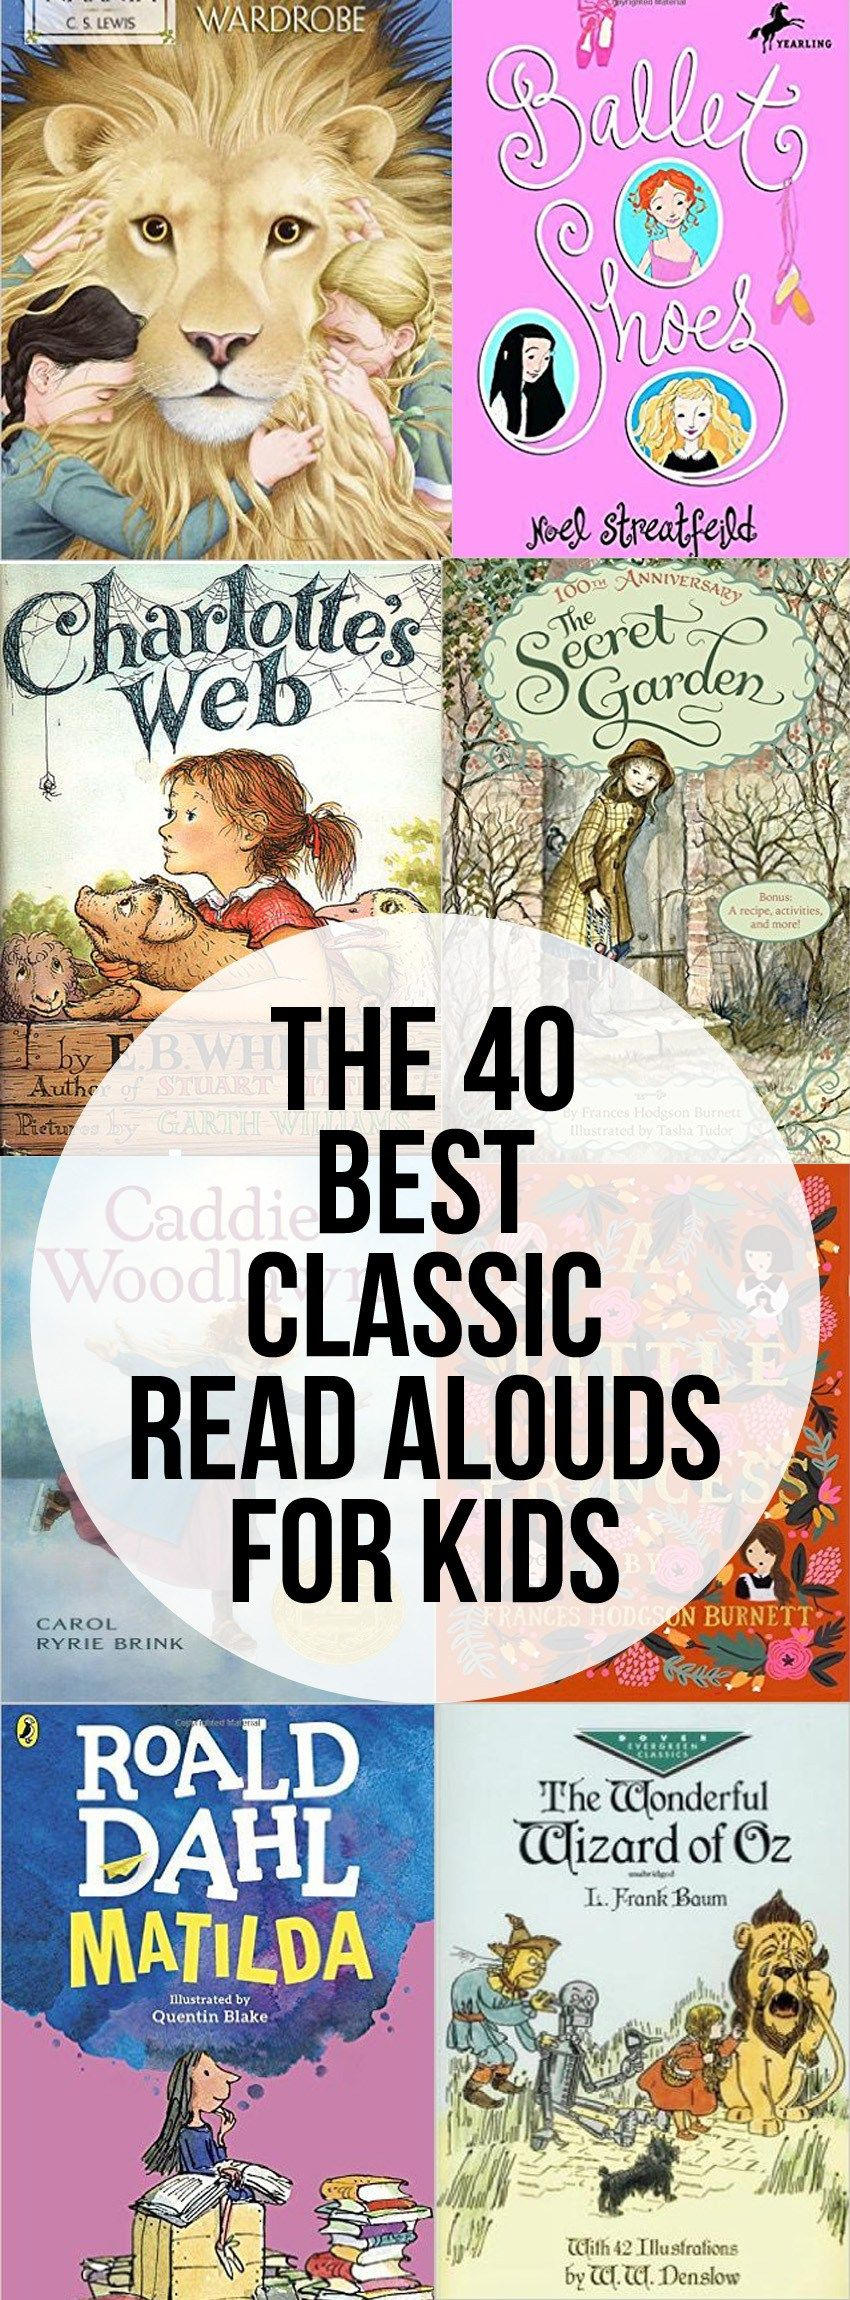 The 40 Best Classic Read Alouds For Kids Intentional Homeschooling Kids Reading Books Homeschool Reading